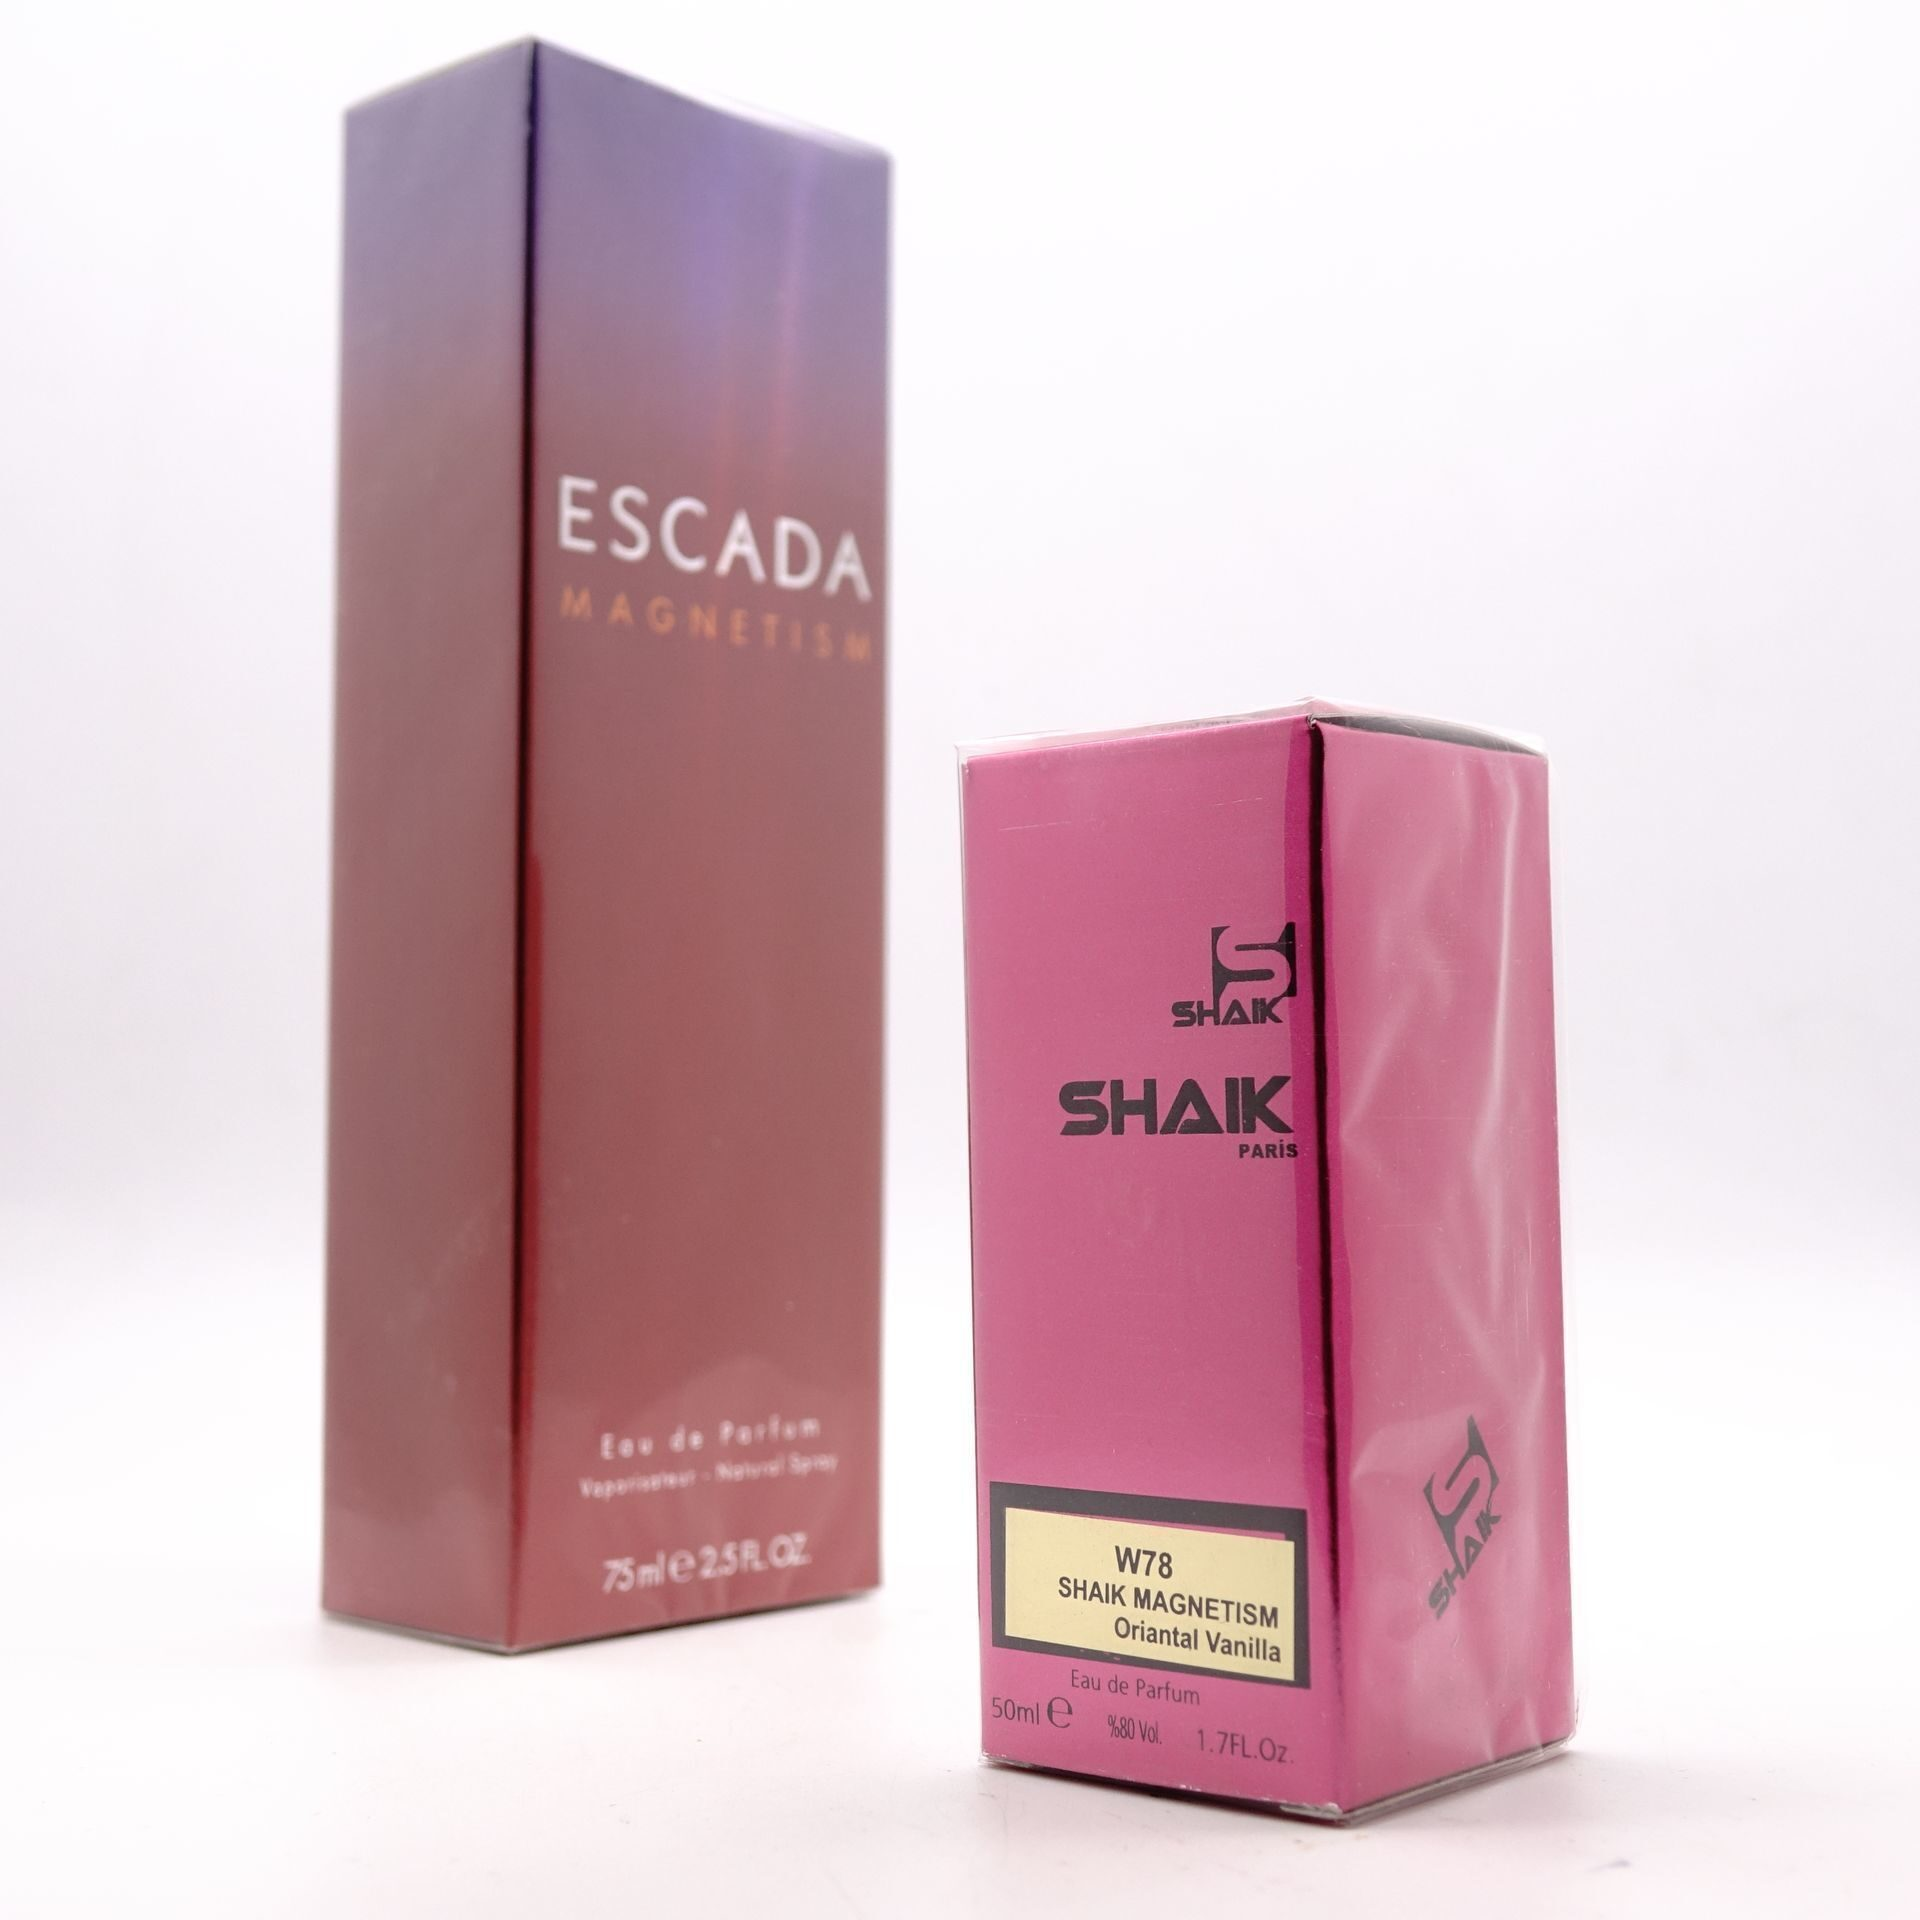 SHAIK W 78 (ESCADA MAGNETISM FOR WOMEN) 50ml